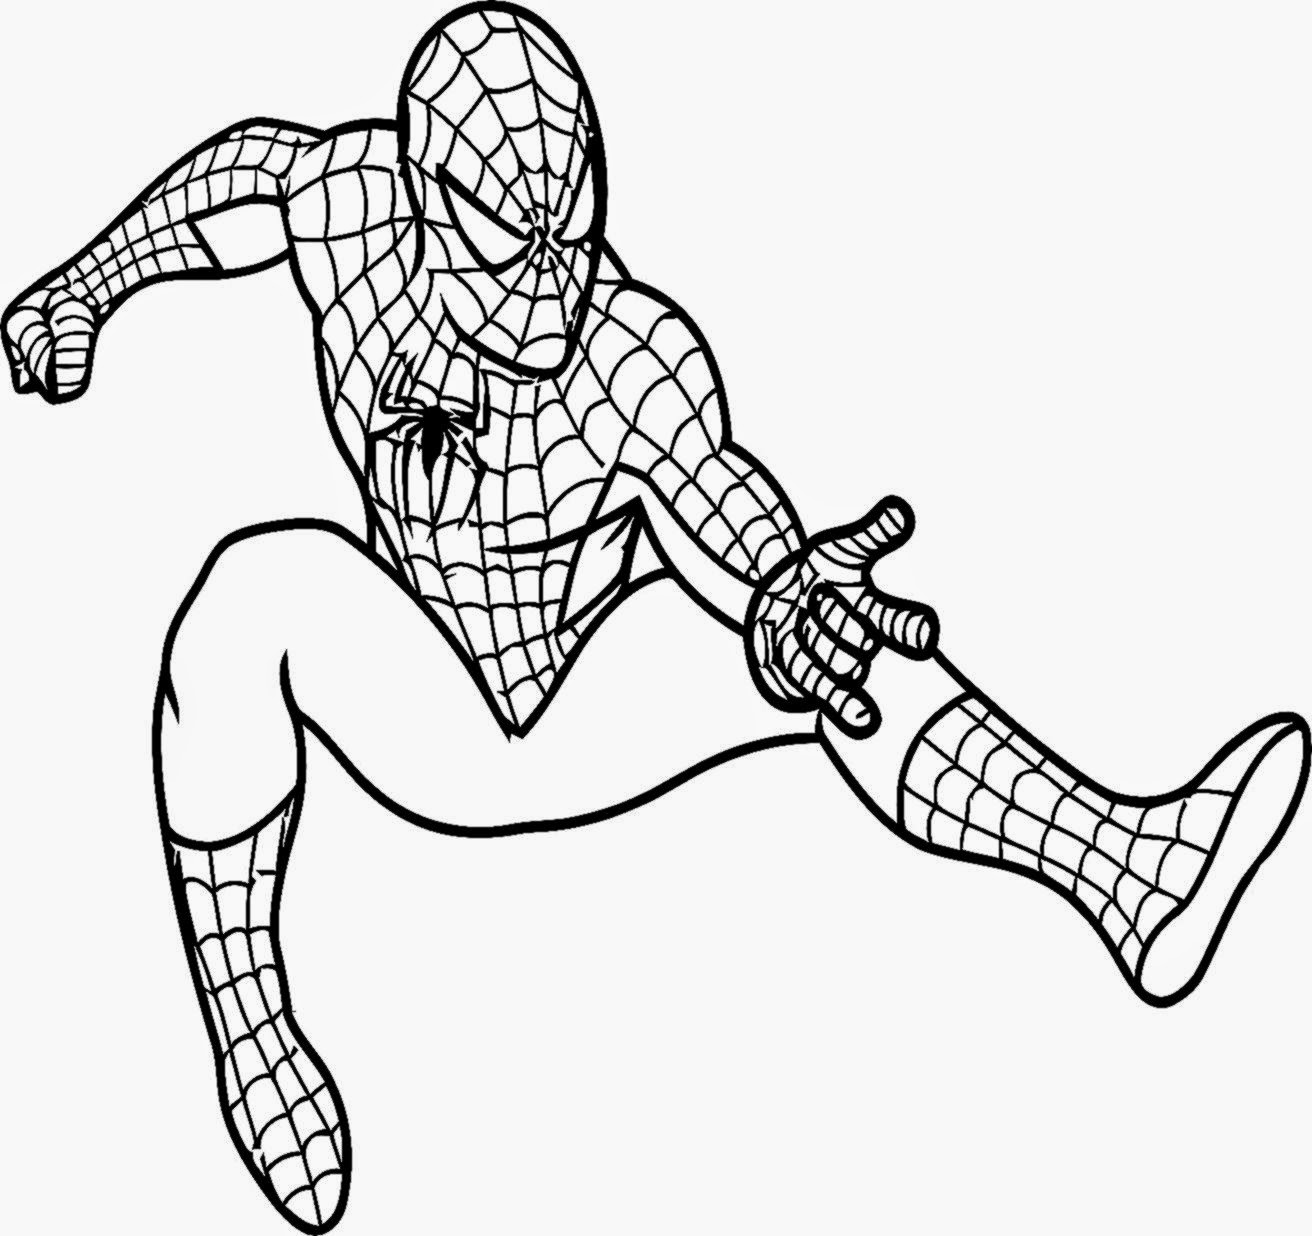 20 Coloring Pictures Of Spiderman Superhero Spider Man Coloring